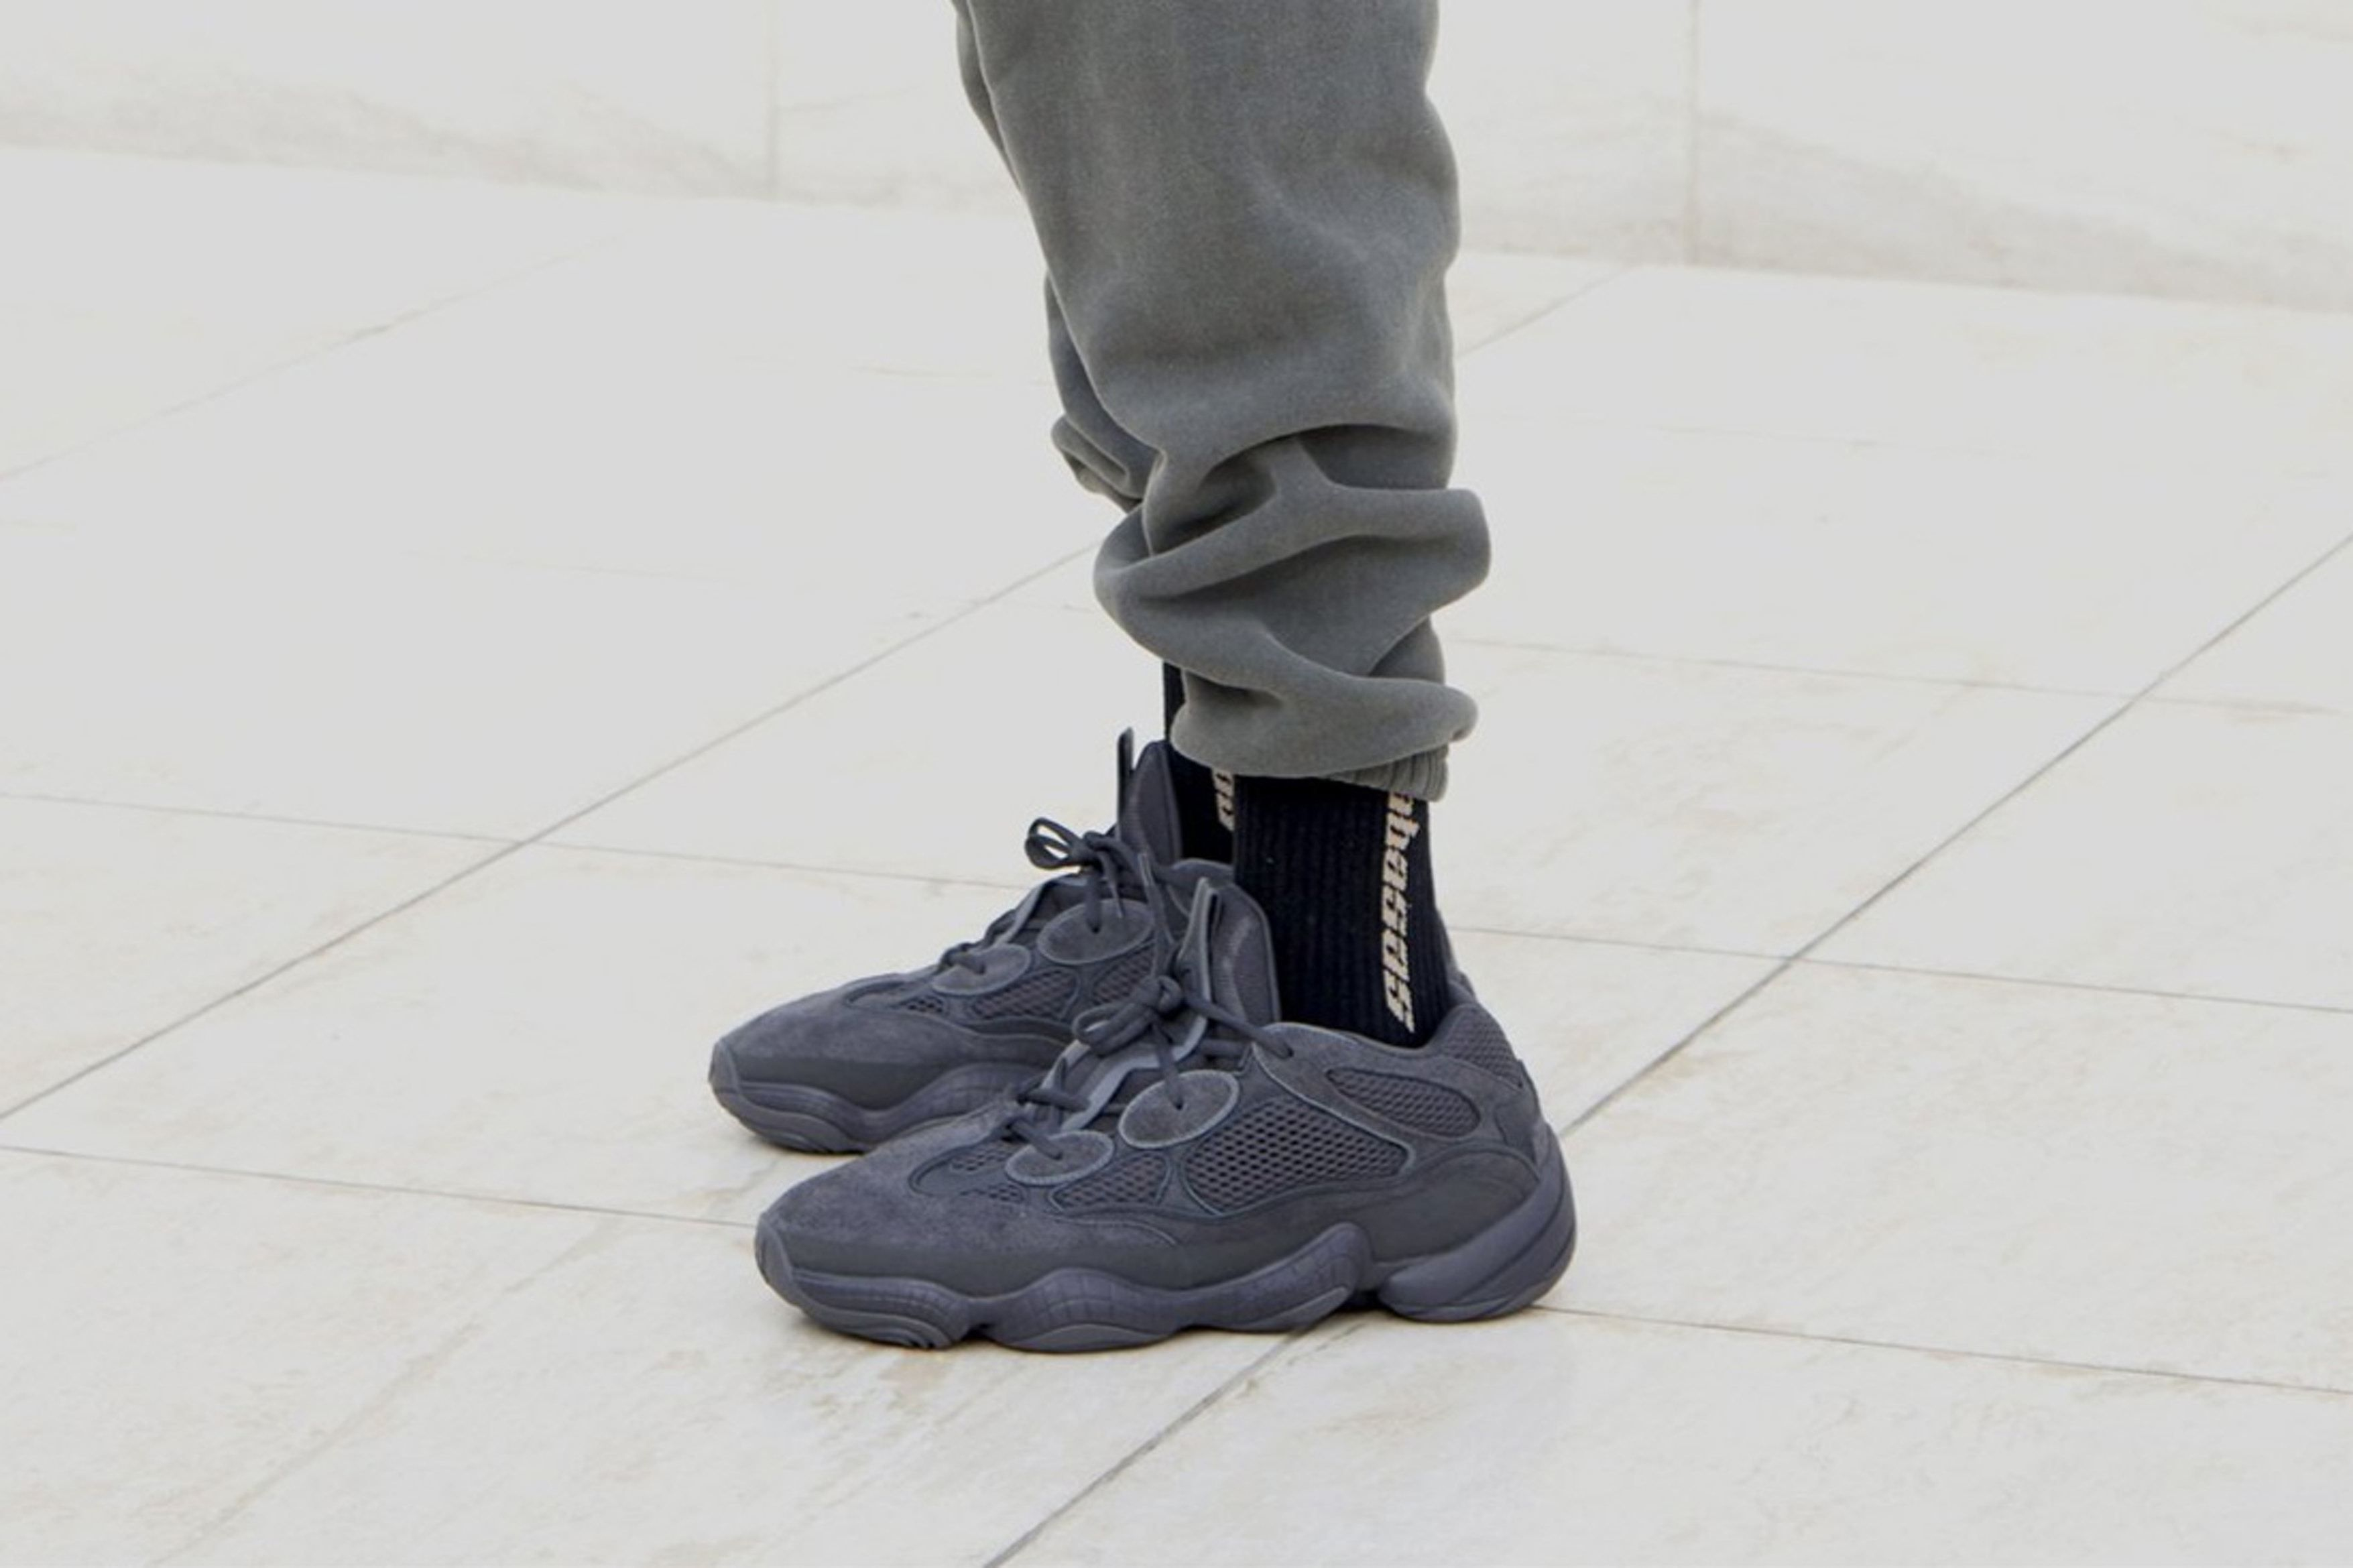 adidas Yeezy Sneakers in Utility Black | Chaussure, Sneakers